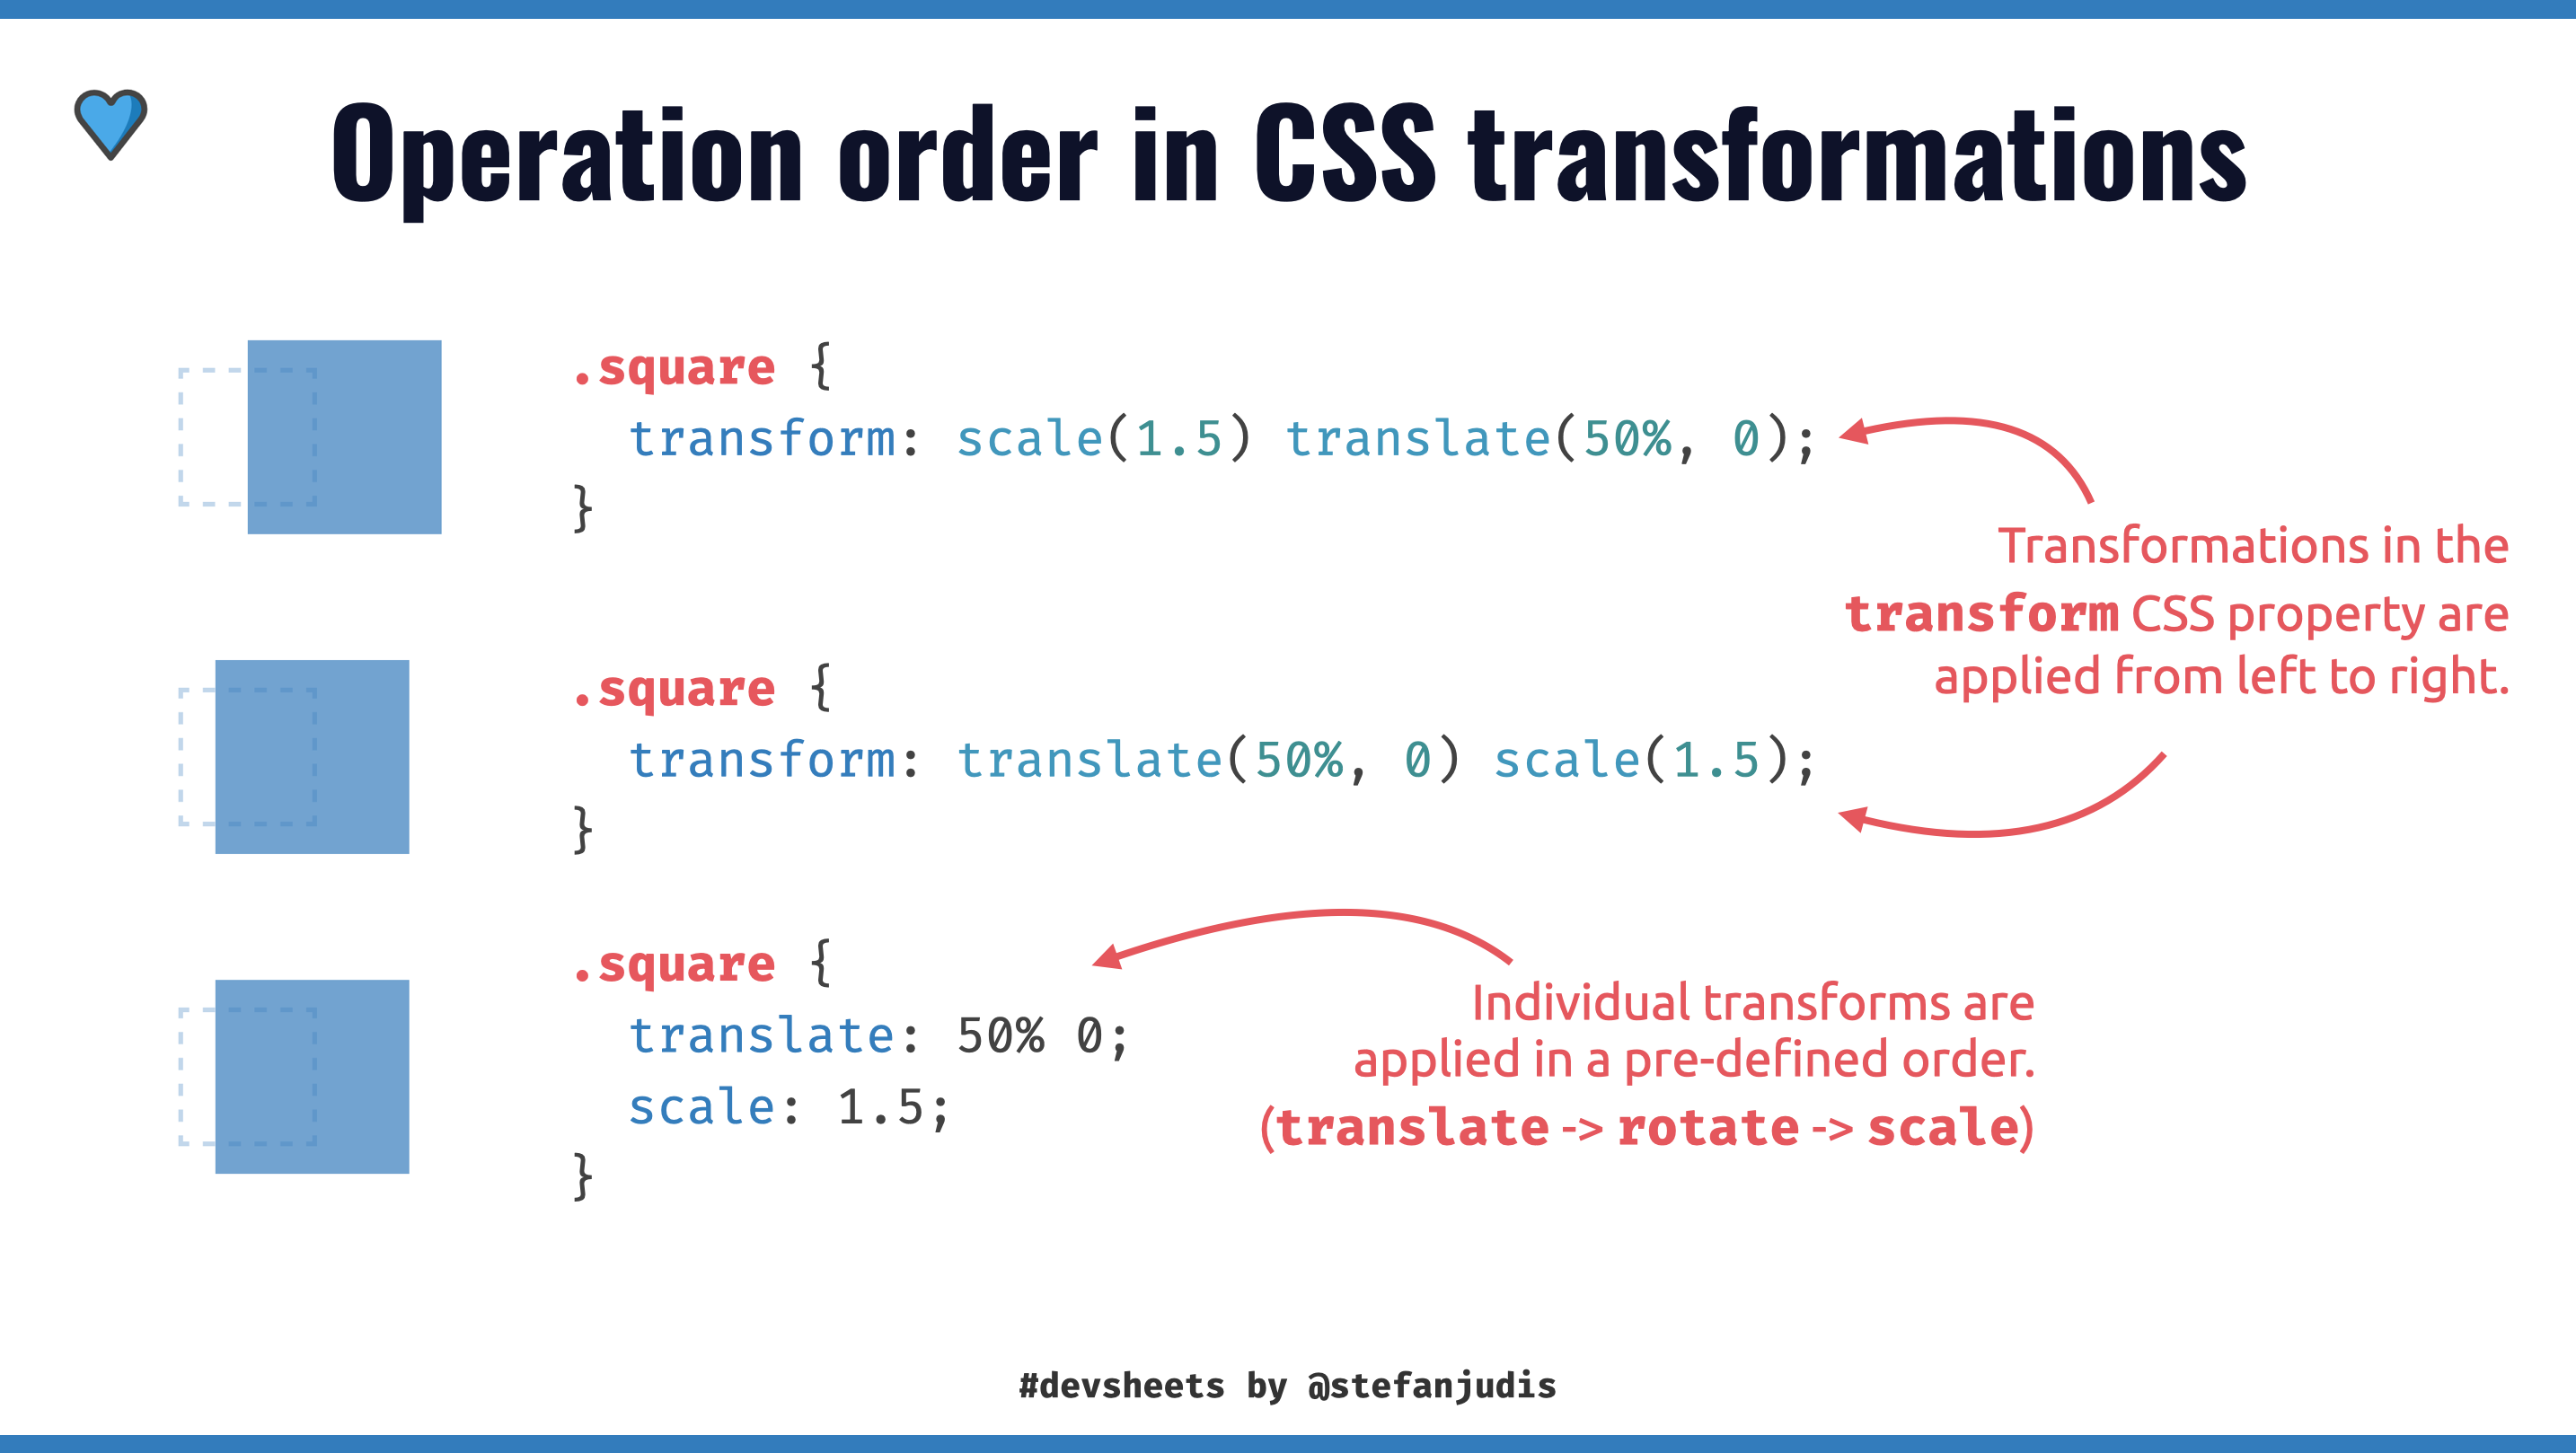 Operation order of CSS transformation showing that transformation functions in the `transform` property are applied left to right and individual transforms depend on a pre-defined order.